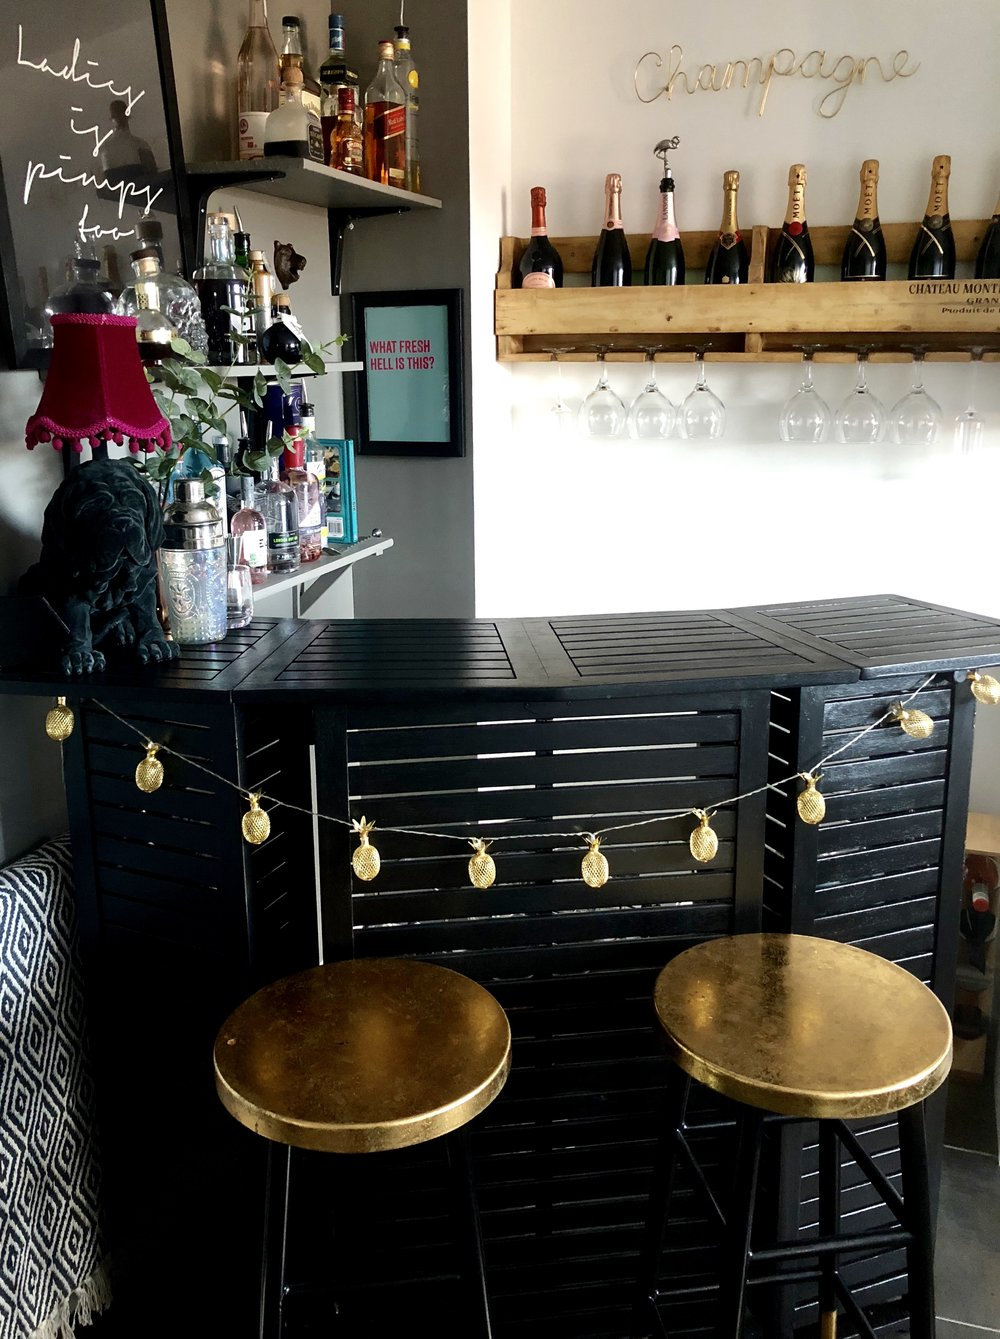 Champagne Rack-   acacia home.co.uk   ...... Gold Pineapple String Lights-   asos.com